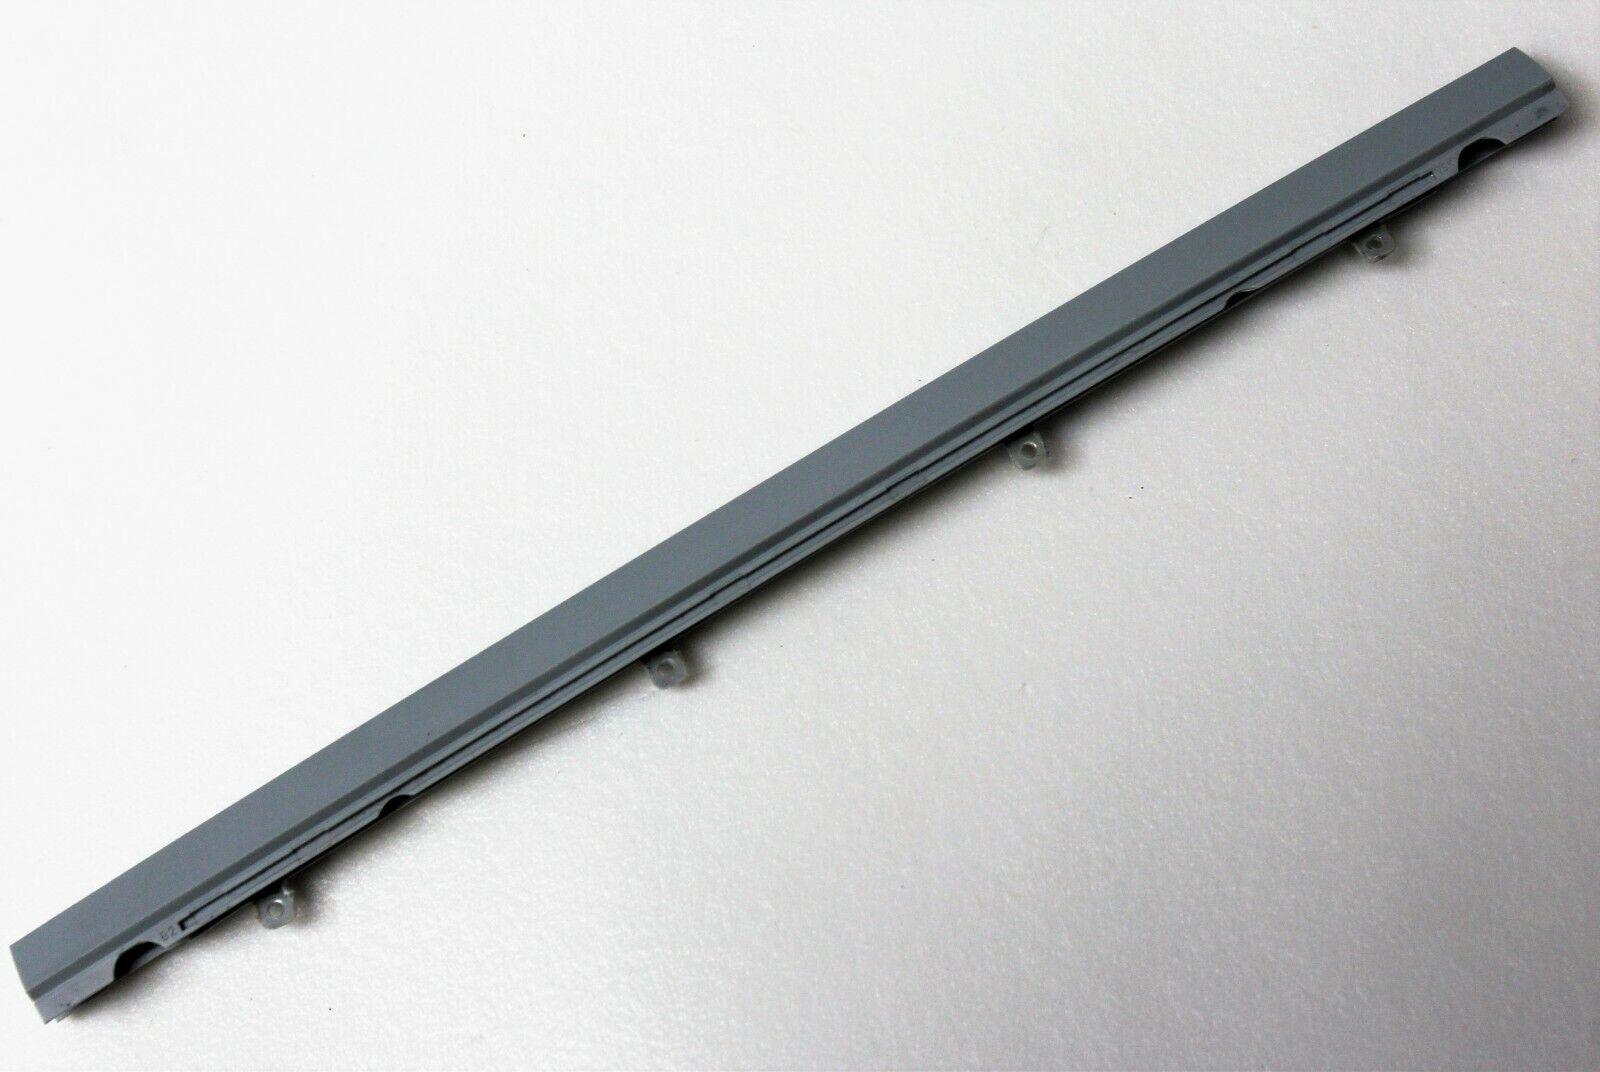 """Hinge Clutch Cover  for  MacBook Air 13"""" A1304 Mid 2009 EMC2334"""